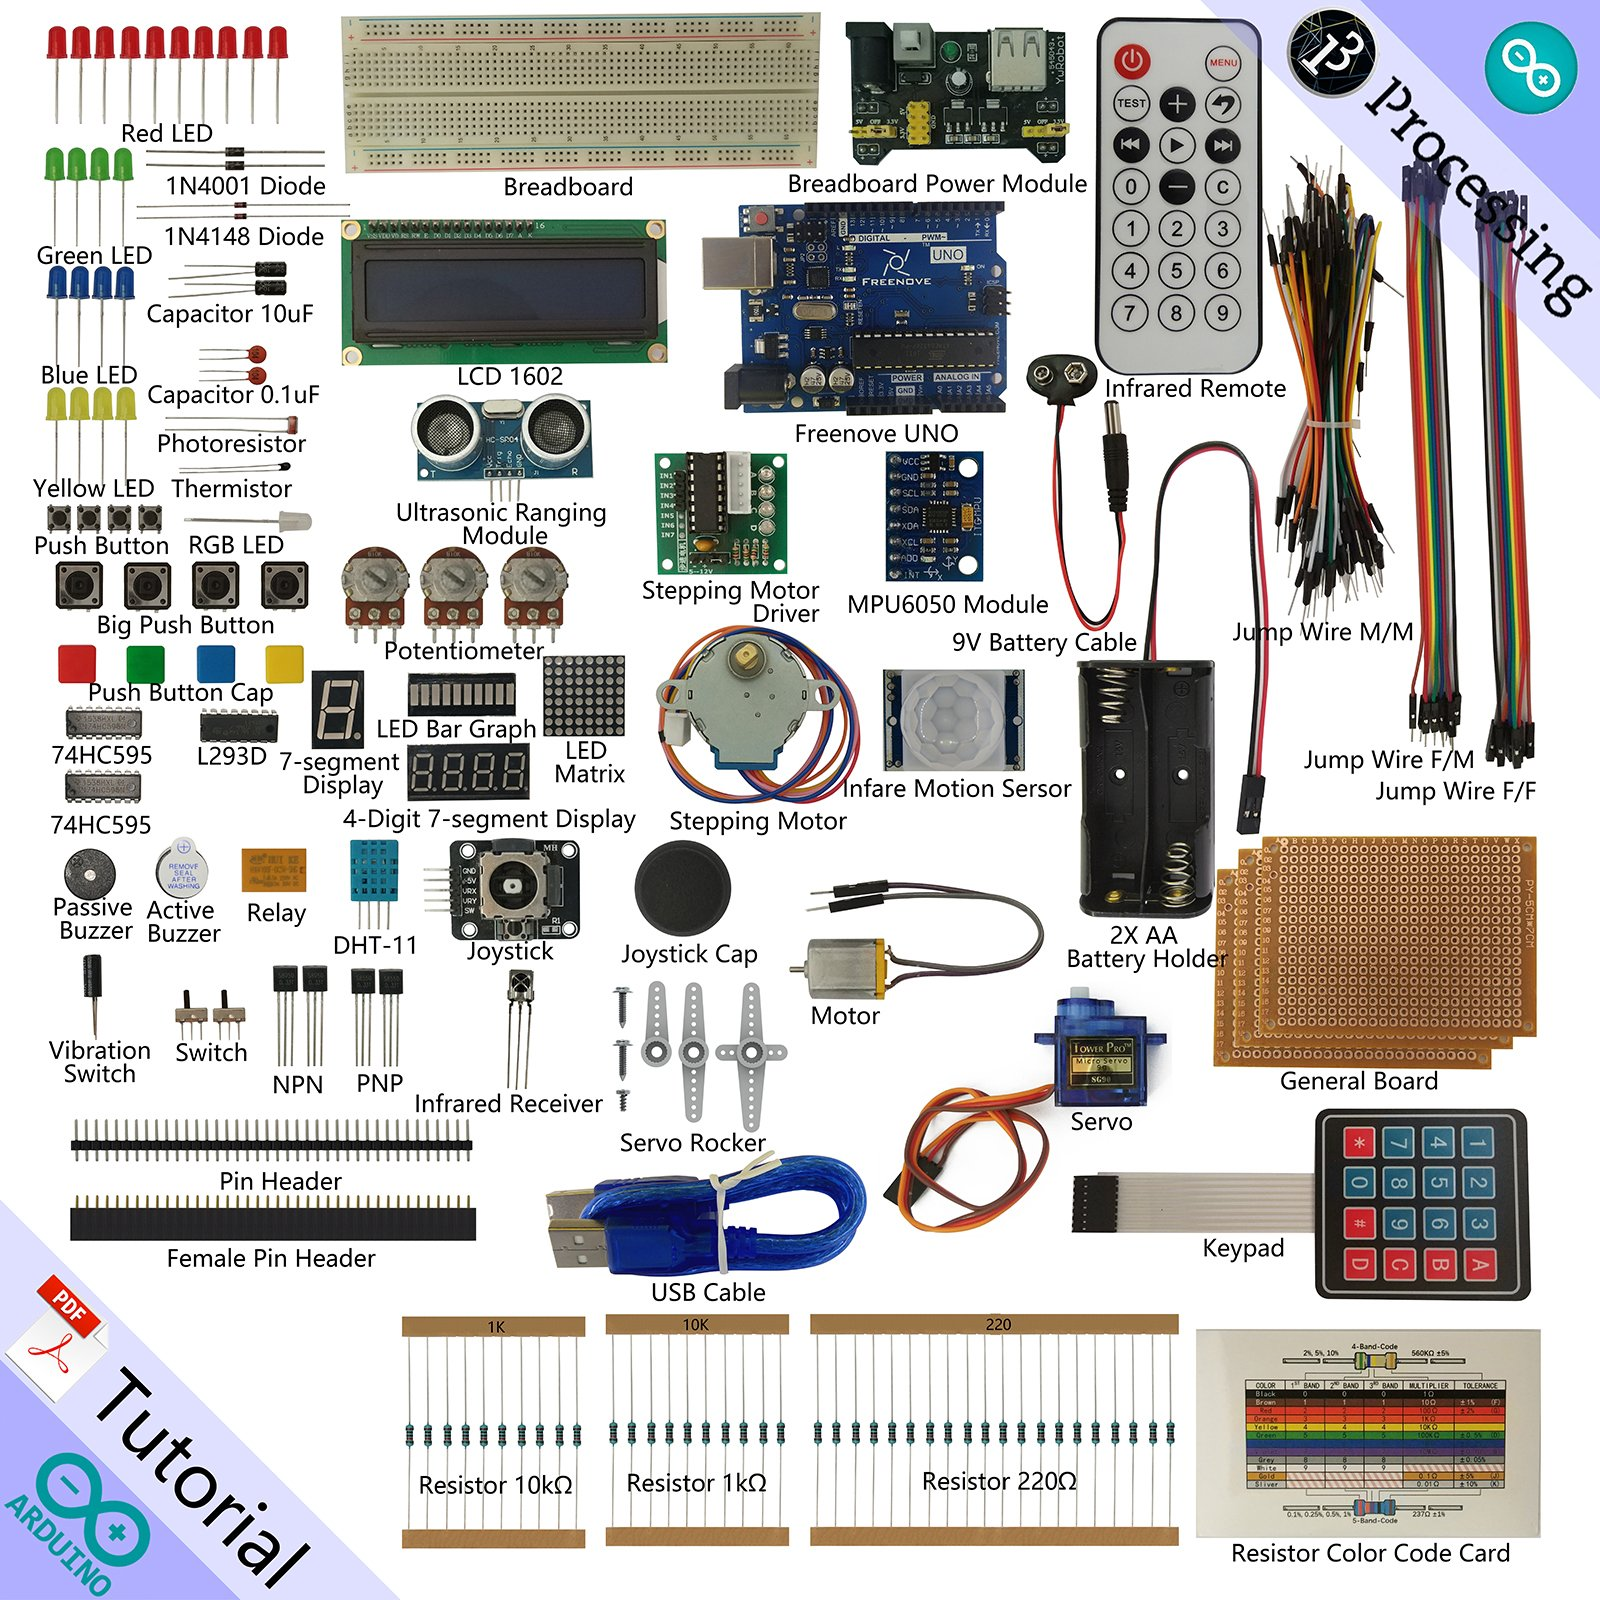 Freenove Ultimate Starter Kit for Arduino | Beginner Learning | UNO R3 MEGA NANO MICRO | Processing Oscilloscope Voltmeter | 51 Projects, 260 Pages Detailed Tutorials, 210+ Components by Freenove